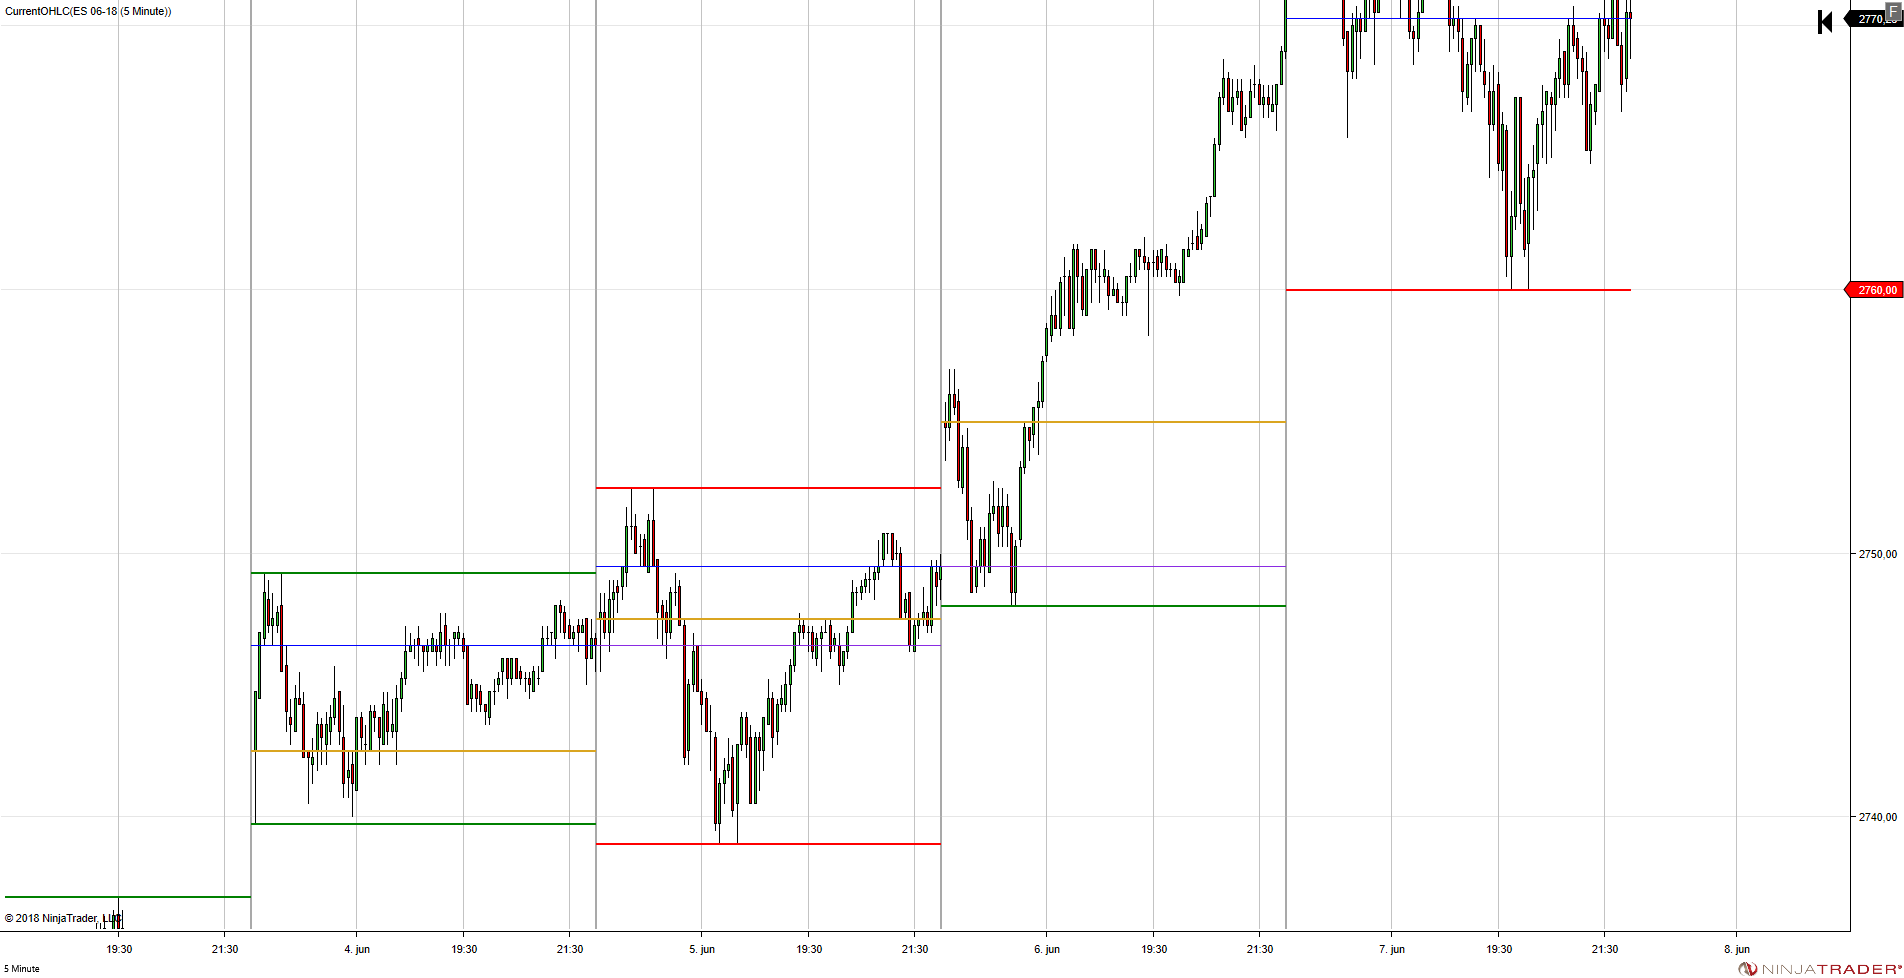 Vertical grid lines at fixed levels (hourly) not possible